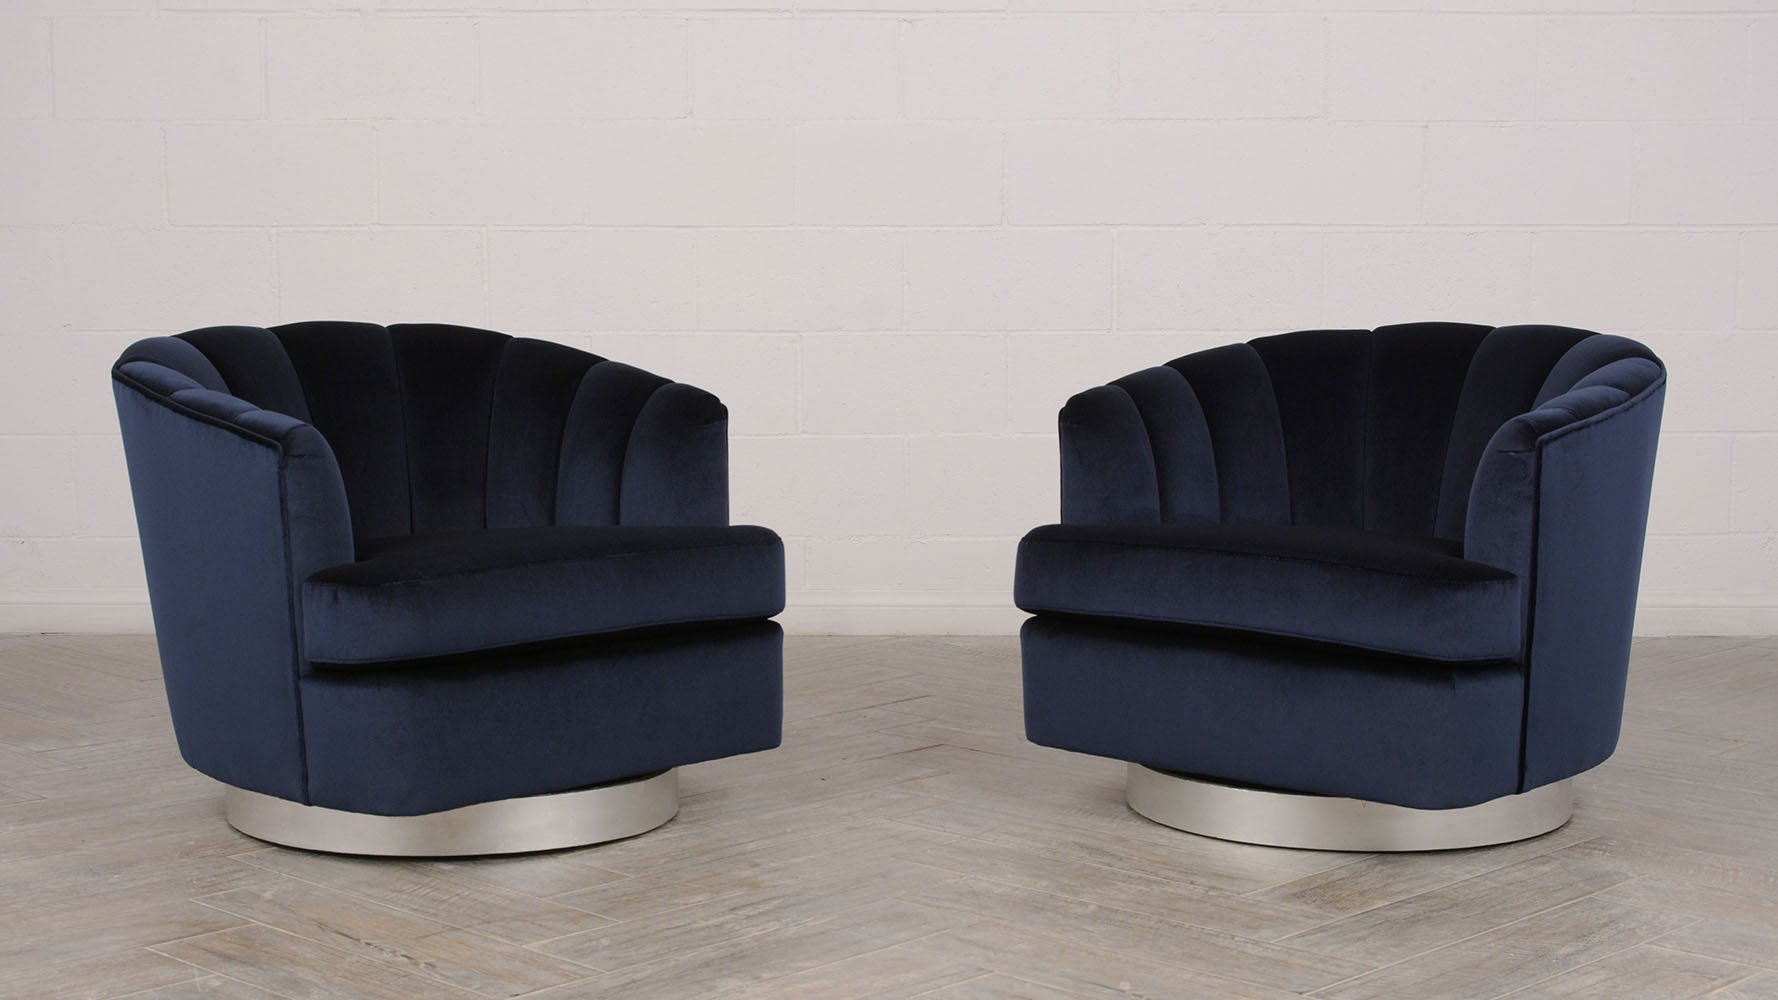 Charmant Mid Century Modern Swivel Chairs, 1960s, Set Of 2